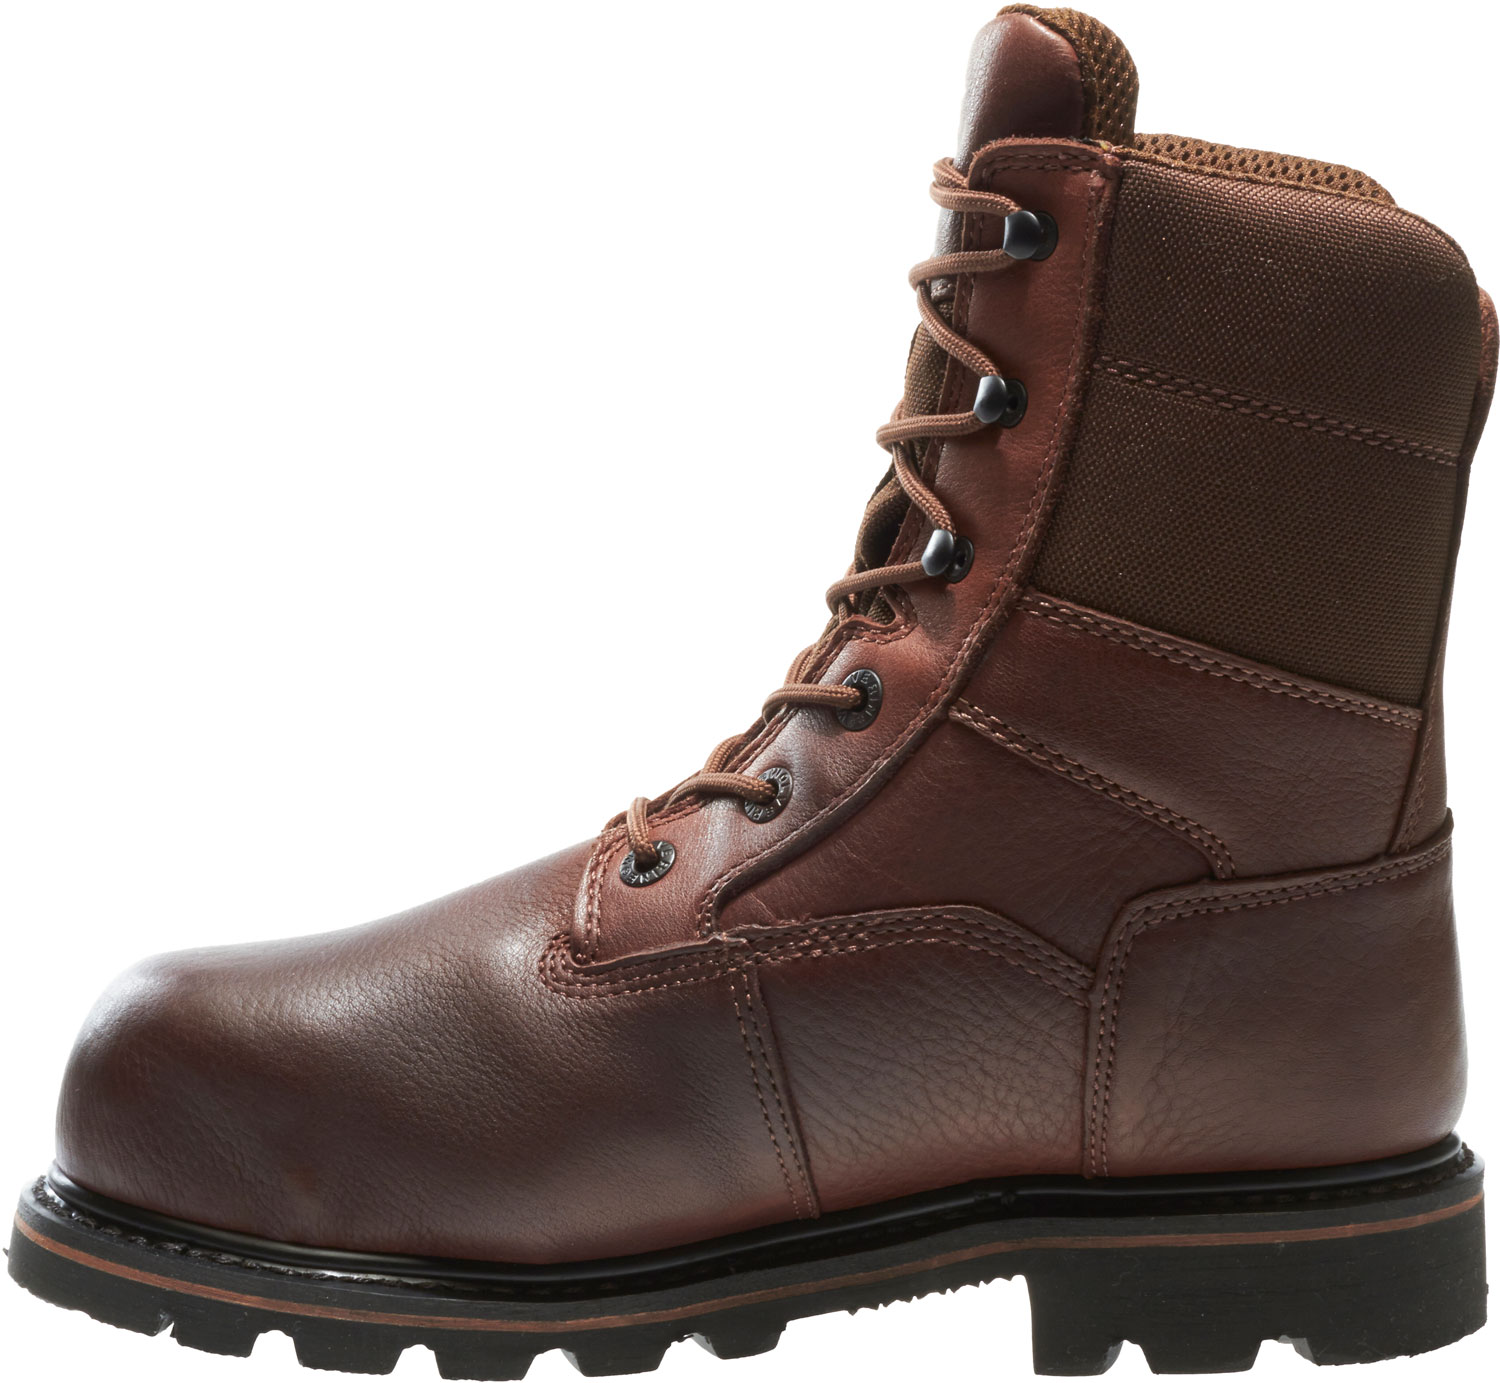 21bd6623b06 Wolverine Men's Comp Toe EH WP/Insulated 8 Inch